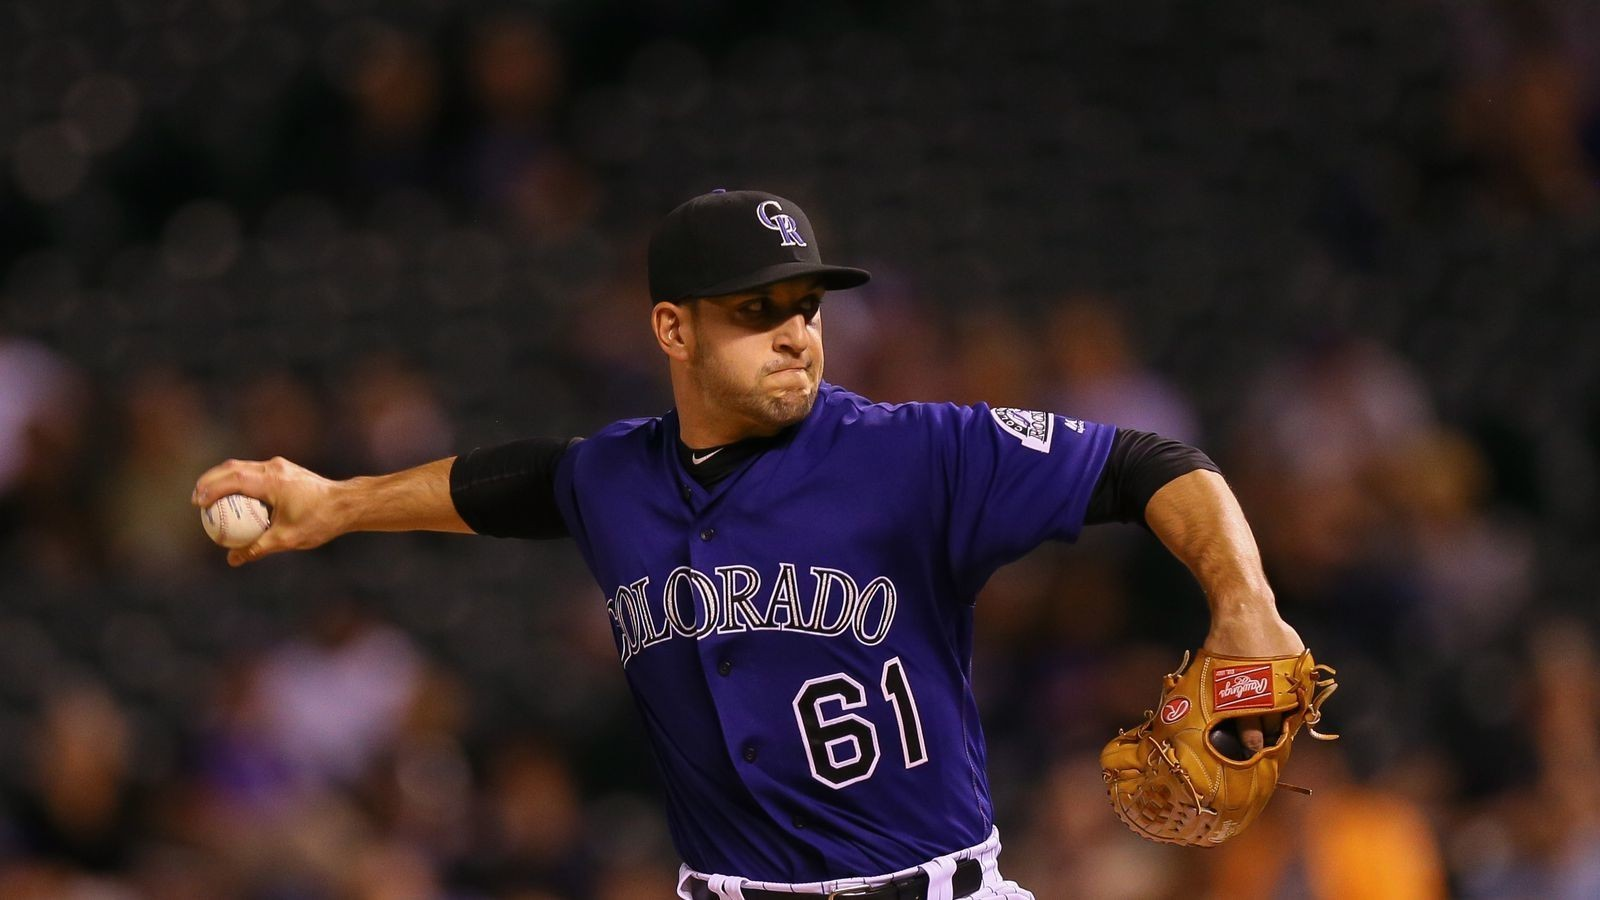 Colorado Rockies prospect Matt Carasiti continues to mow down Triple-A hitters